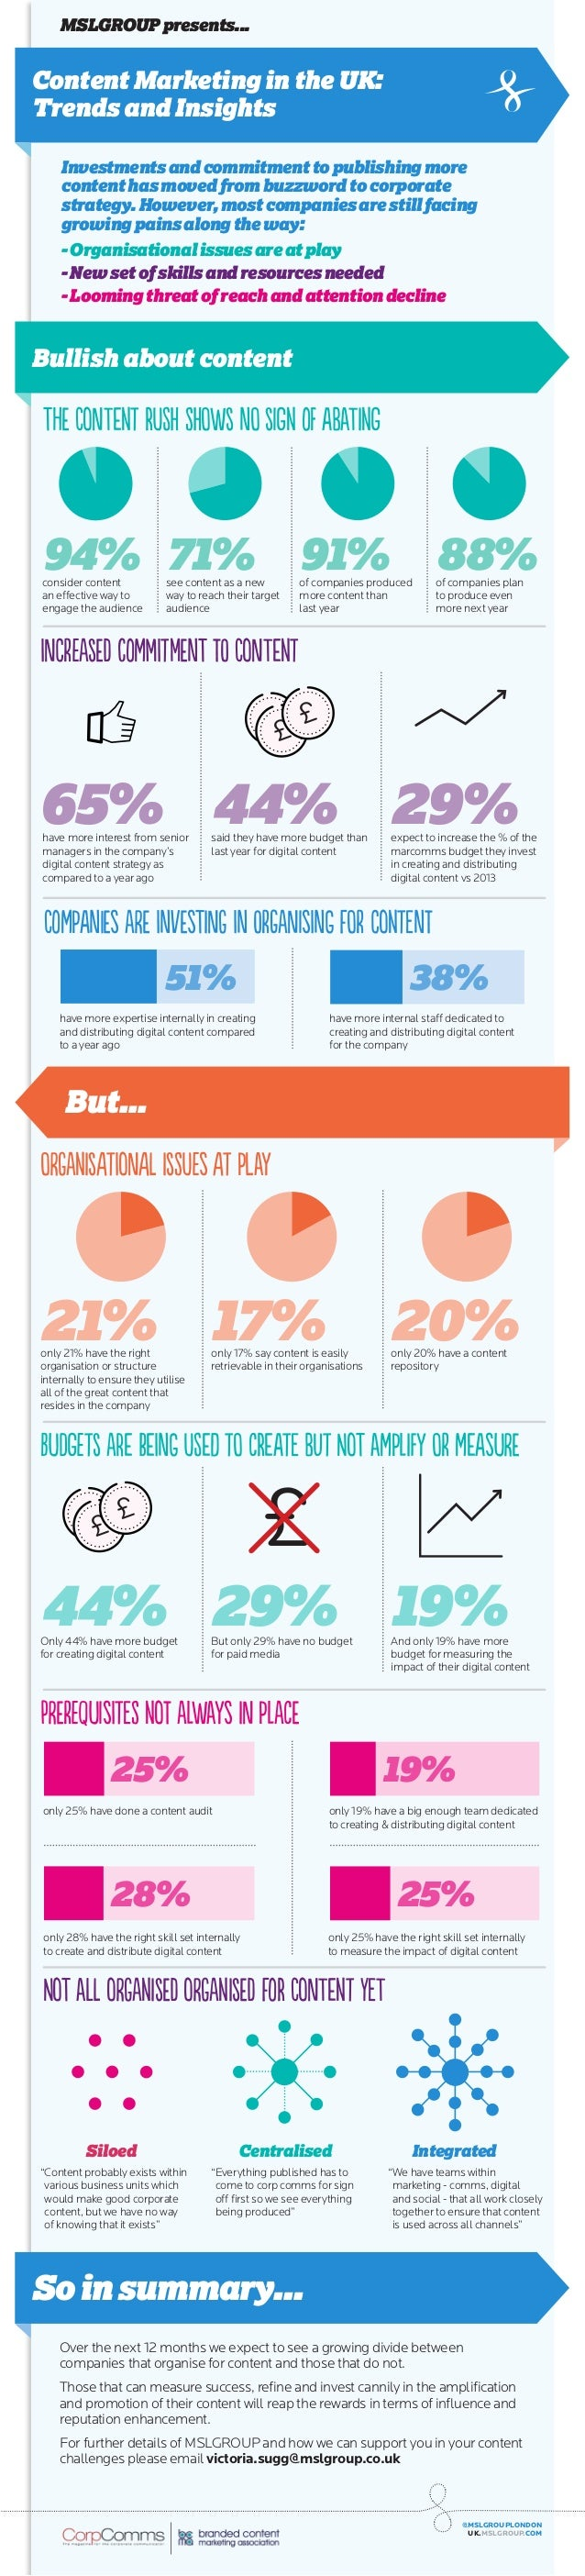 Infographic: Content Marketing in the UK: Survey Results